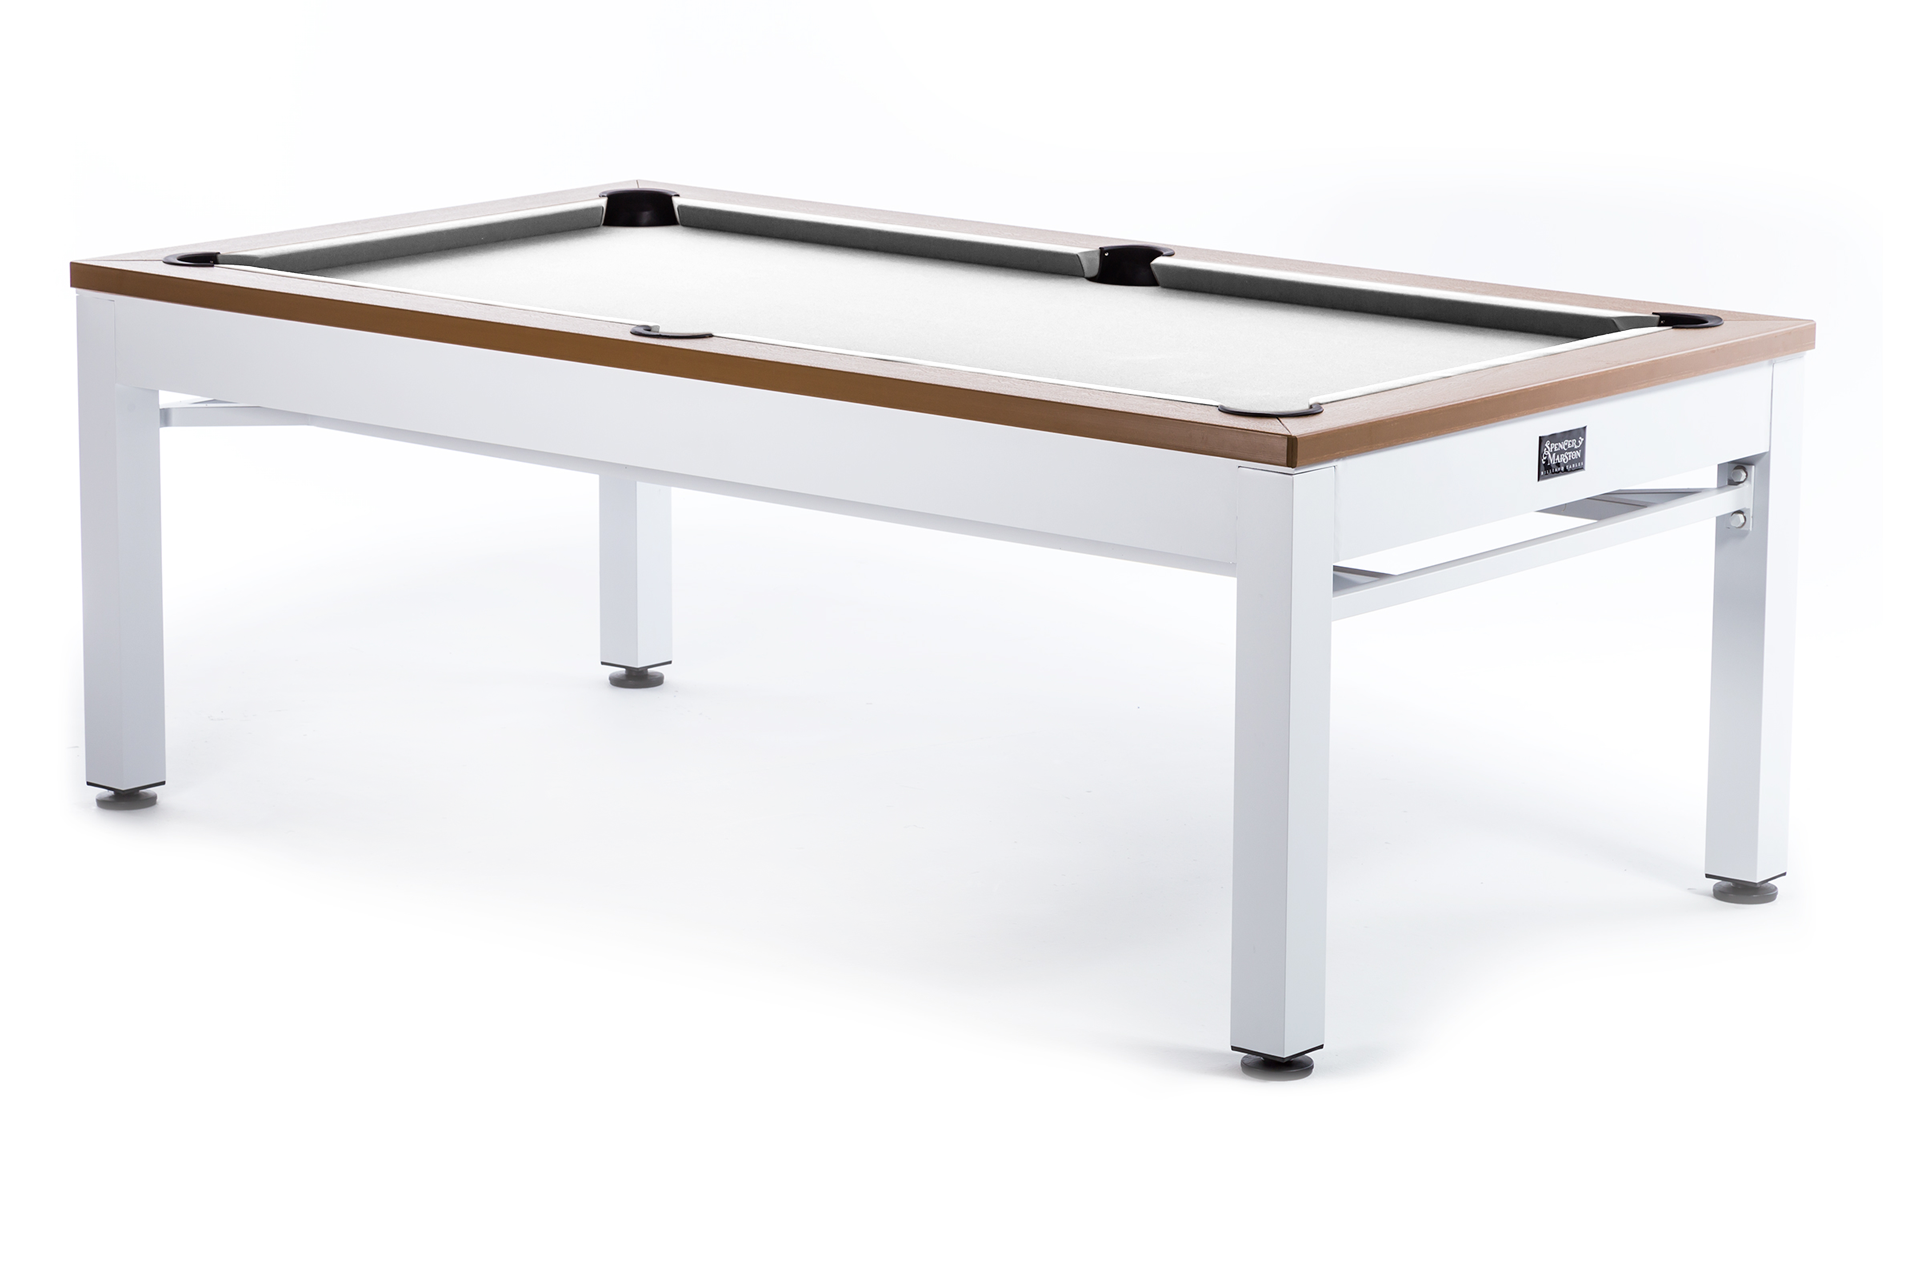 Enjoy A Game Of Pool With Family And Friends AND Enjoy The Great Outdoors,  With The Spencer Marston Newport Outdoor Pool Table. This Table Is Designed  For ...